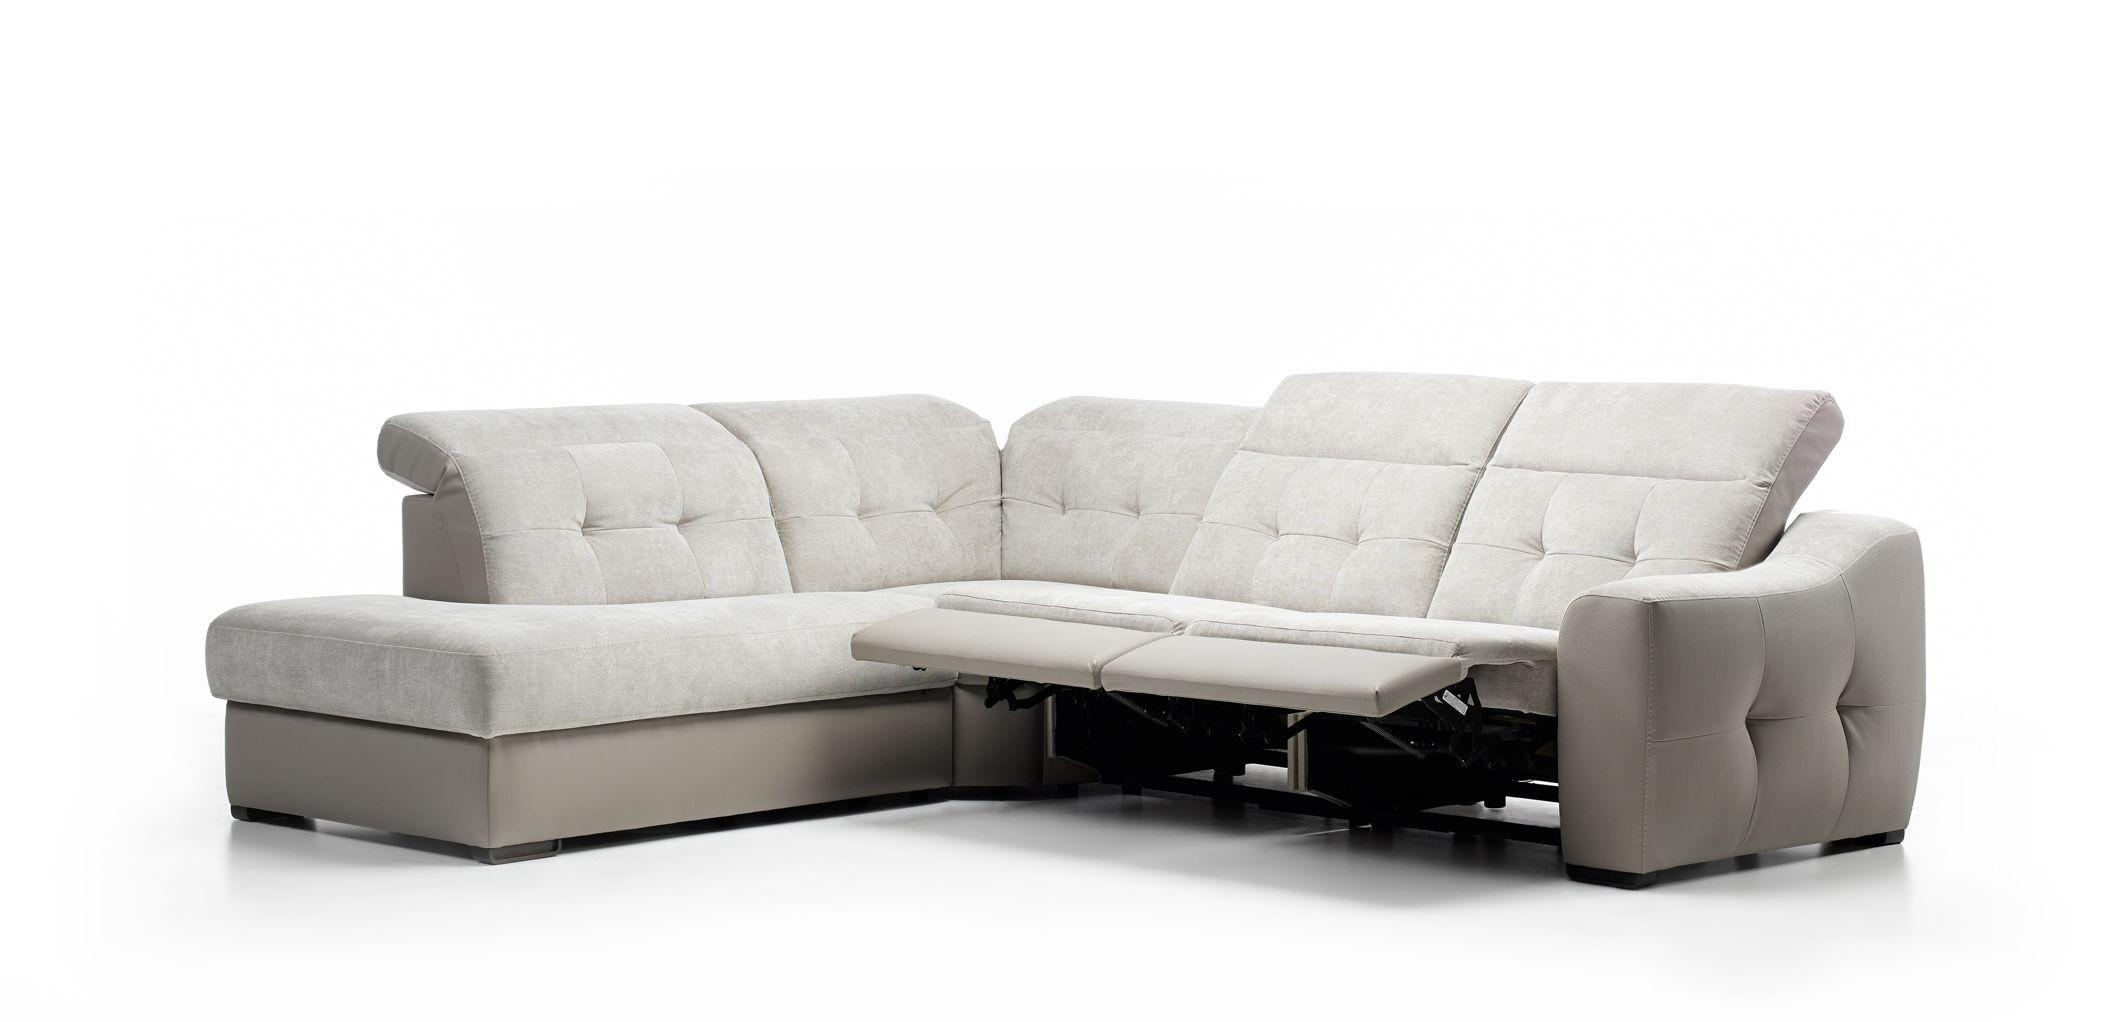 Sofas Center : Modern Recliner Sofa Reclining Dreaded Picture Pertaining To Italian Recliner Sofas (View 5 of 20)